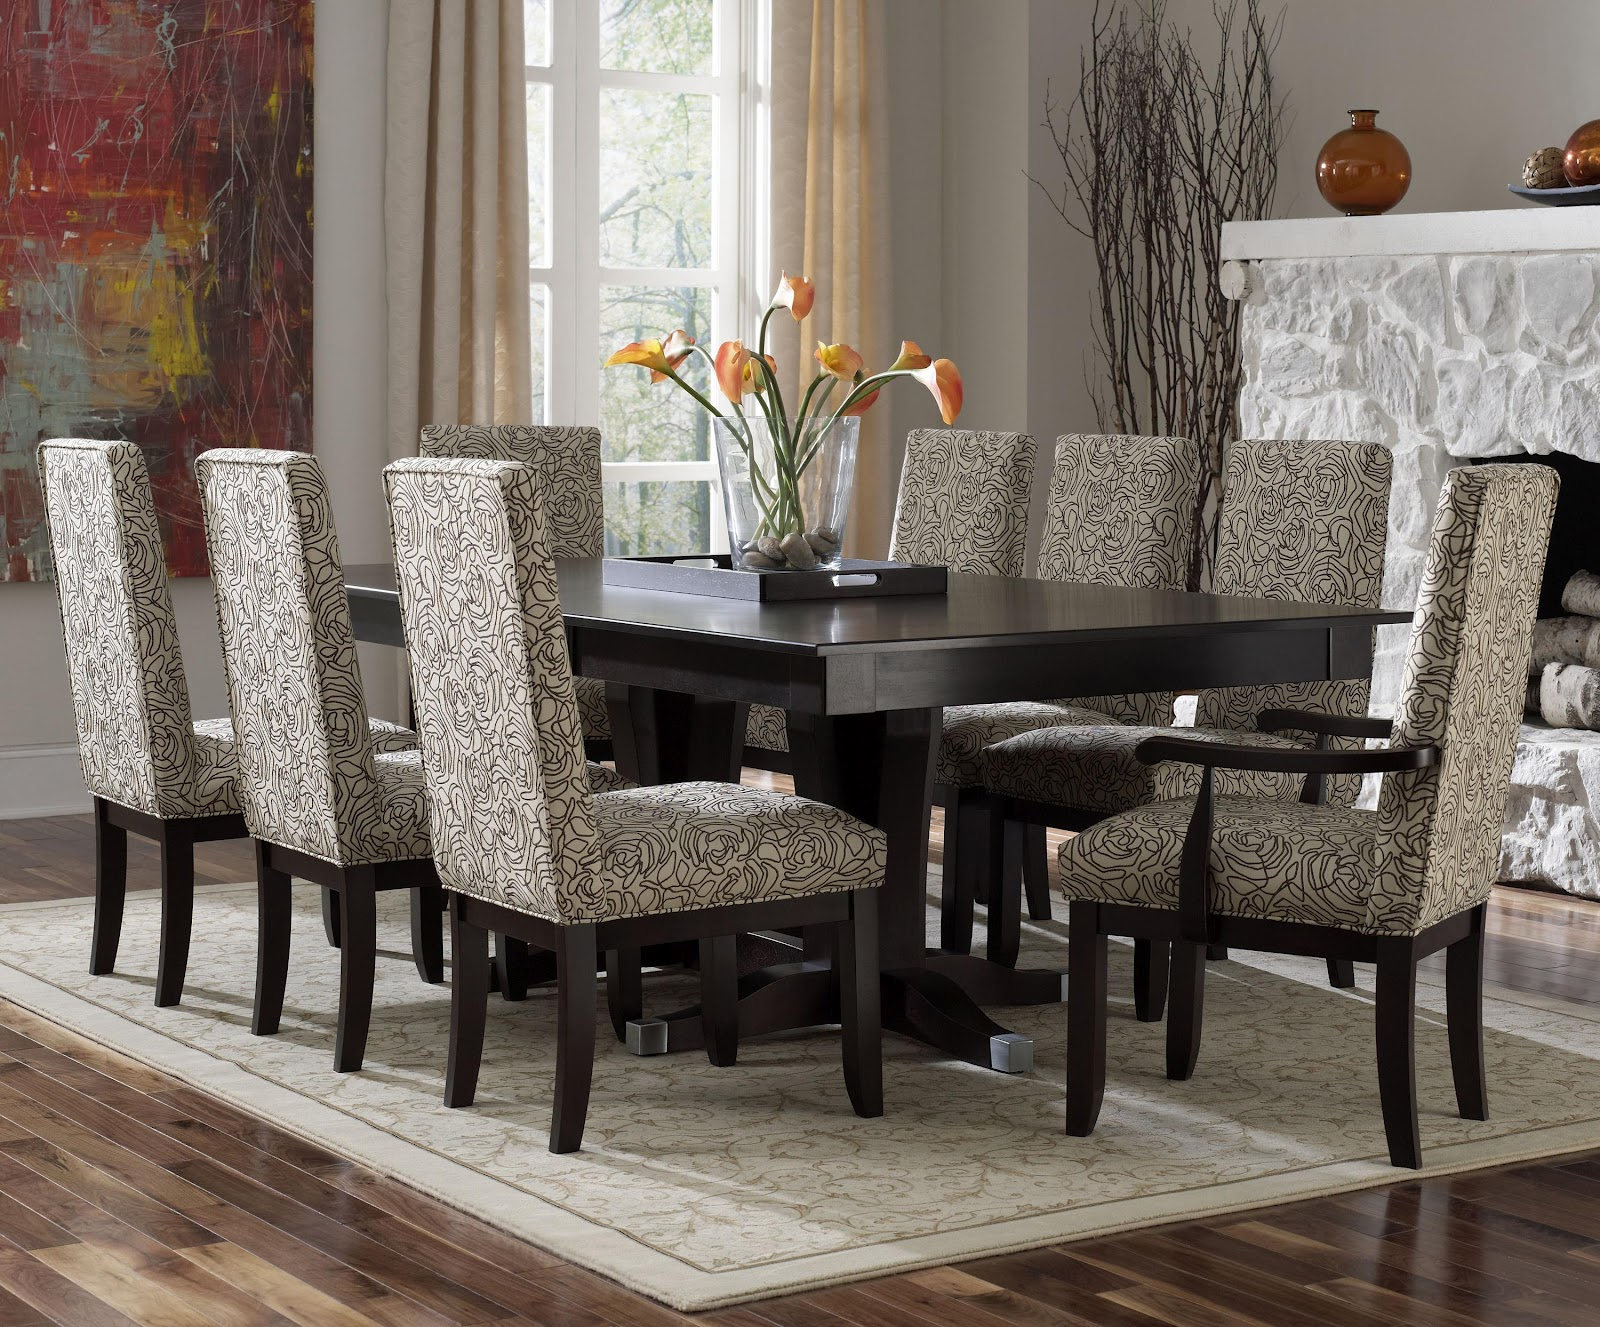 Canadel Furniture Long Island New York NY  DINING ROOMUNIQUE DINETTECANADEL NYBERMEX NY631